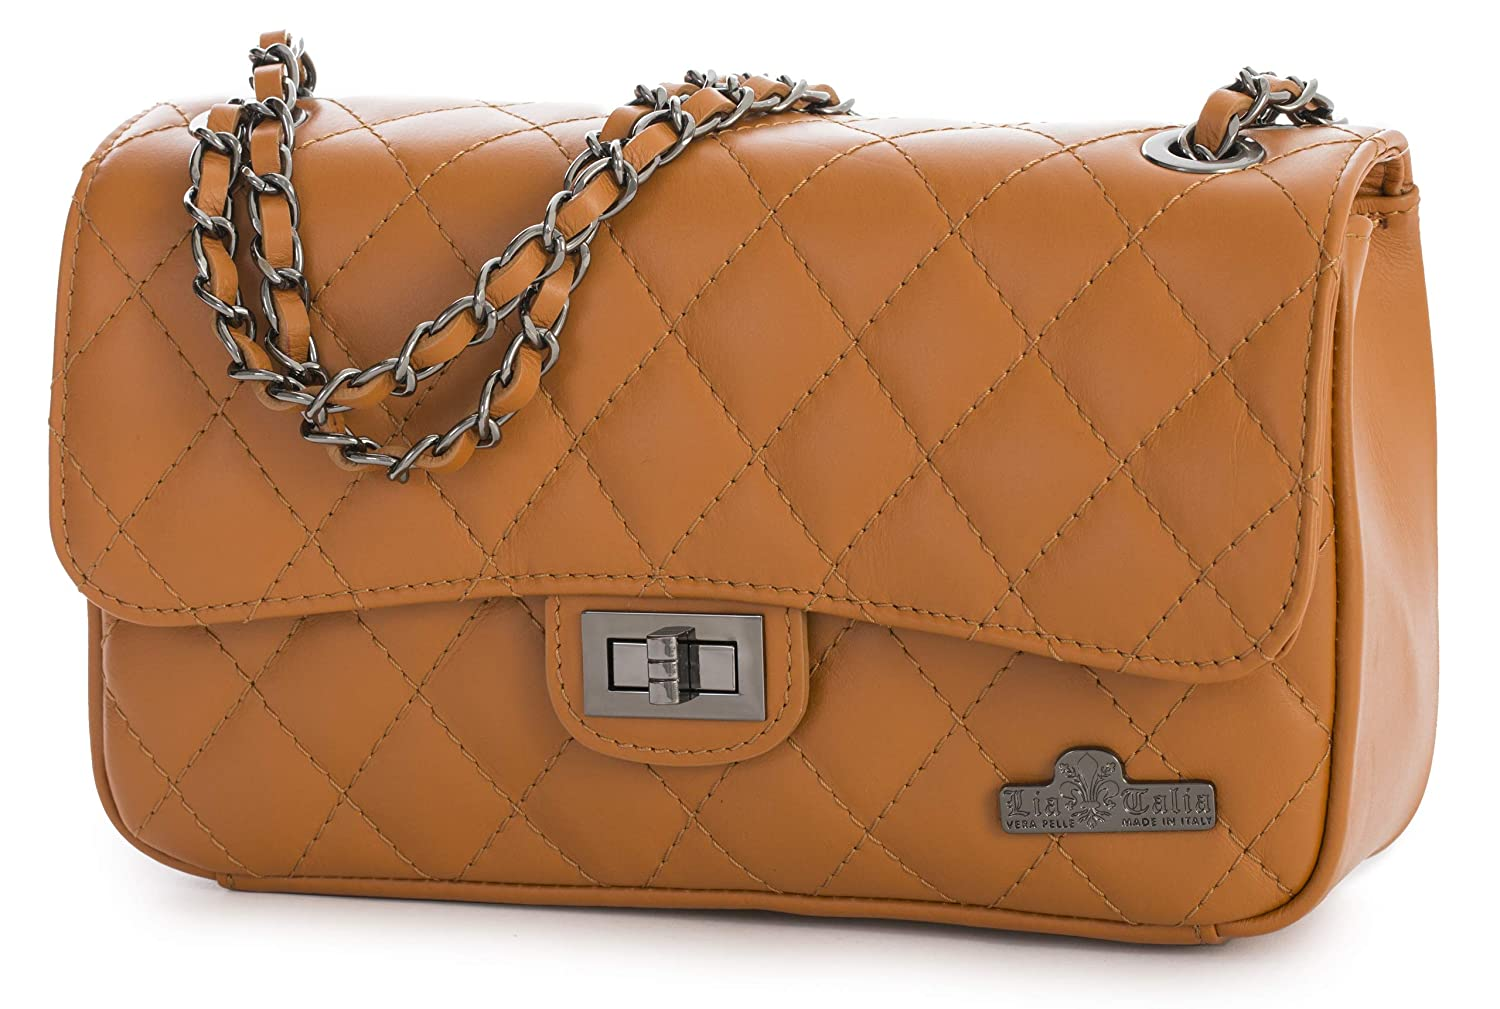 6d6750ef0c LIATALIA Womens Leather Clutch Bag - Ladies Quilted 100% Genuine Italian  Leather Evening Purse Handbag - Handmade Verapelle - CAROL: Amazon.co.uk:  Shoes & ...